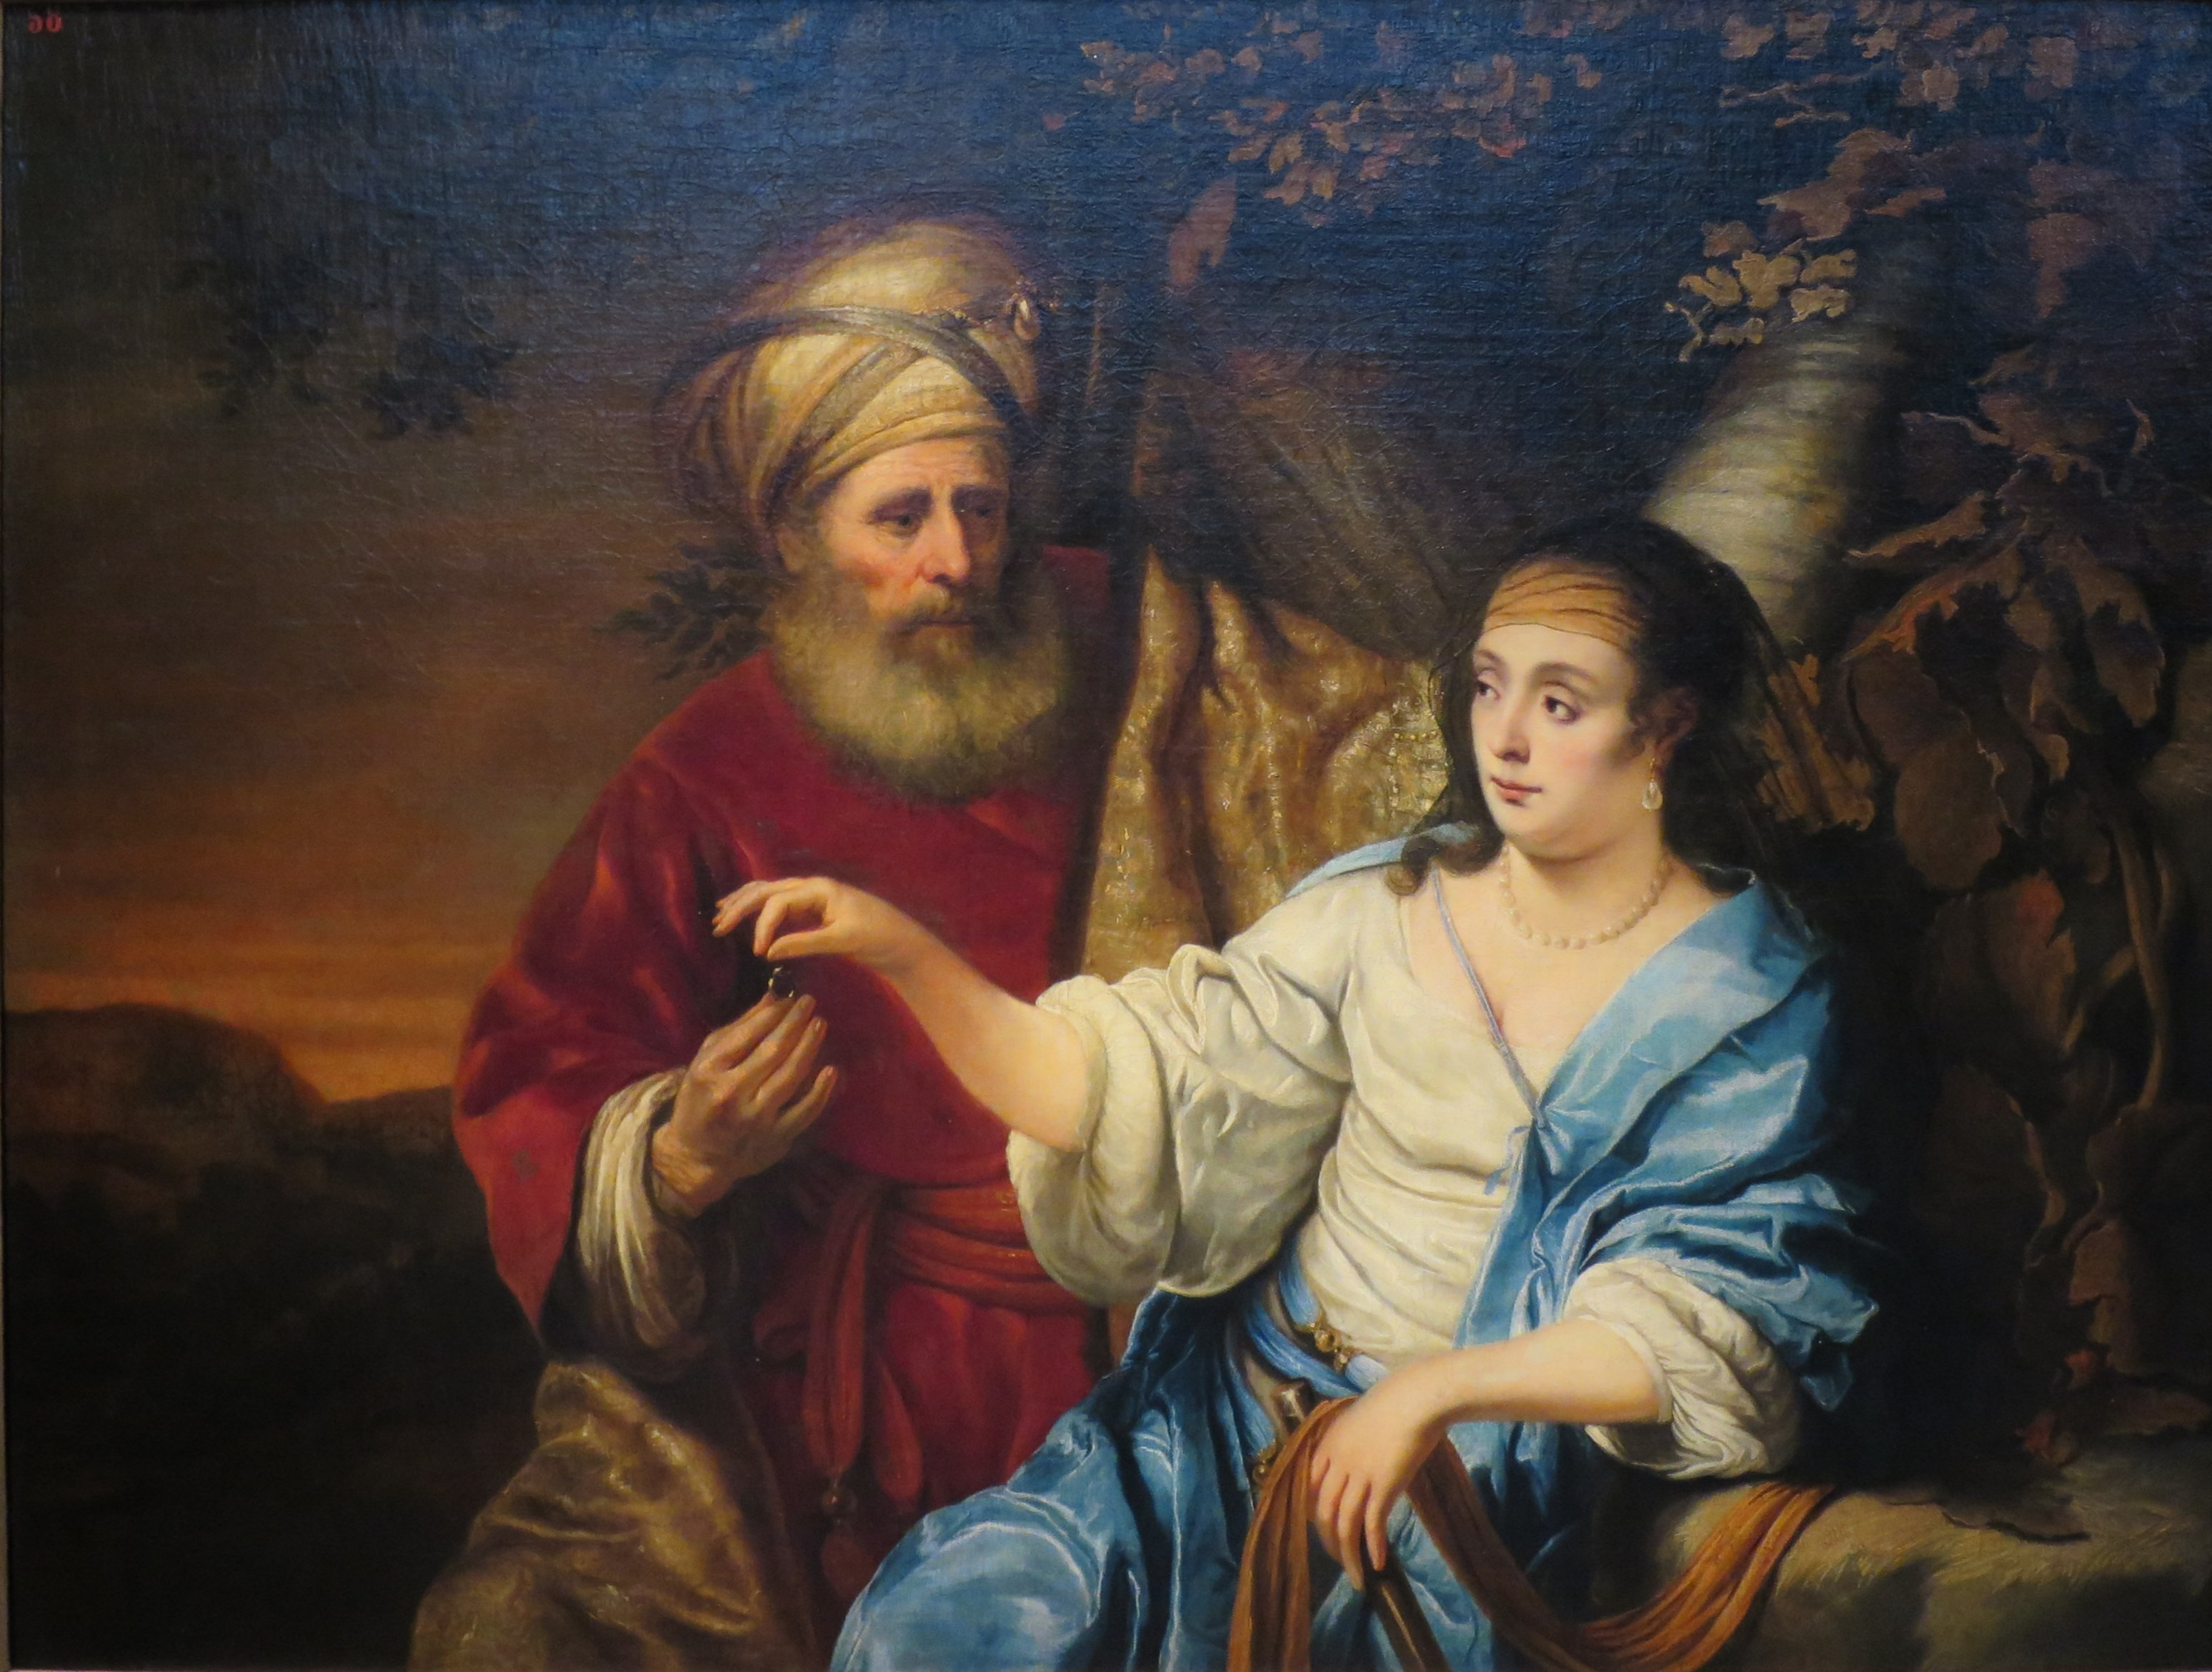 https://upload.wikimedia.org/wikipedia/commons/8/88/'Judah_and_Tamar'_by_Ferdinand_Bol,_1653,_Pushkin_Museum.JPG